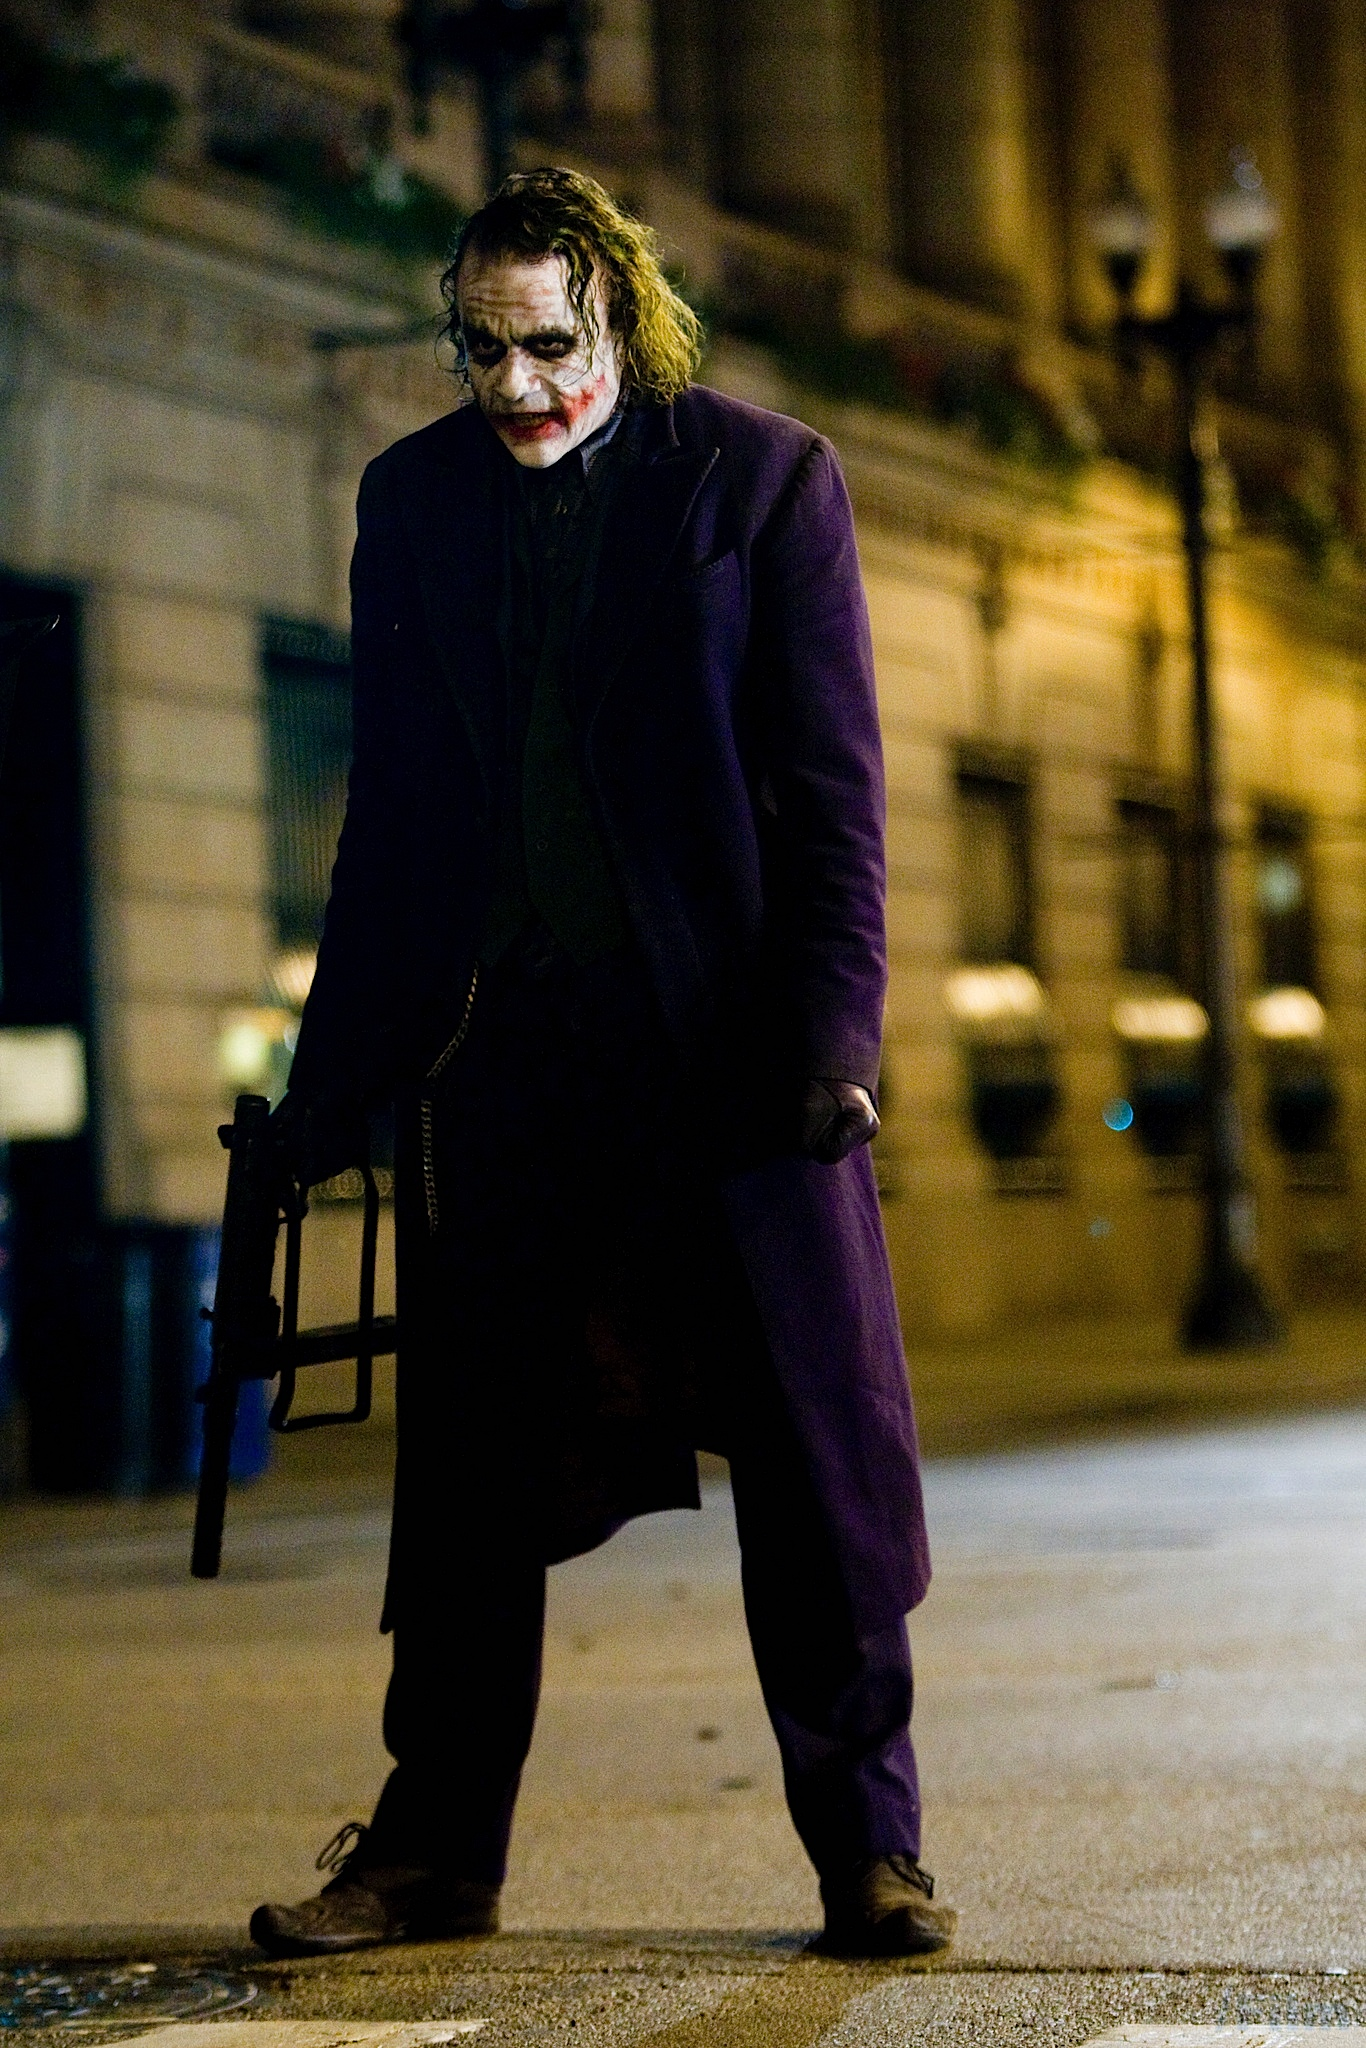 character analysis the joker lucien maverick s blog let s